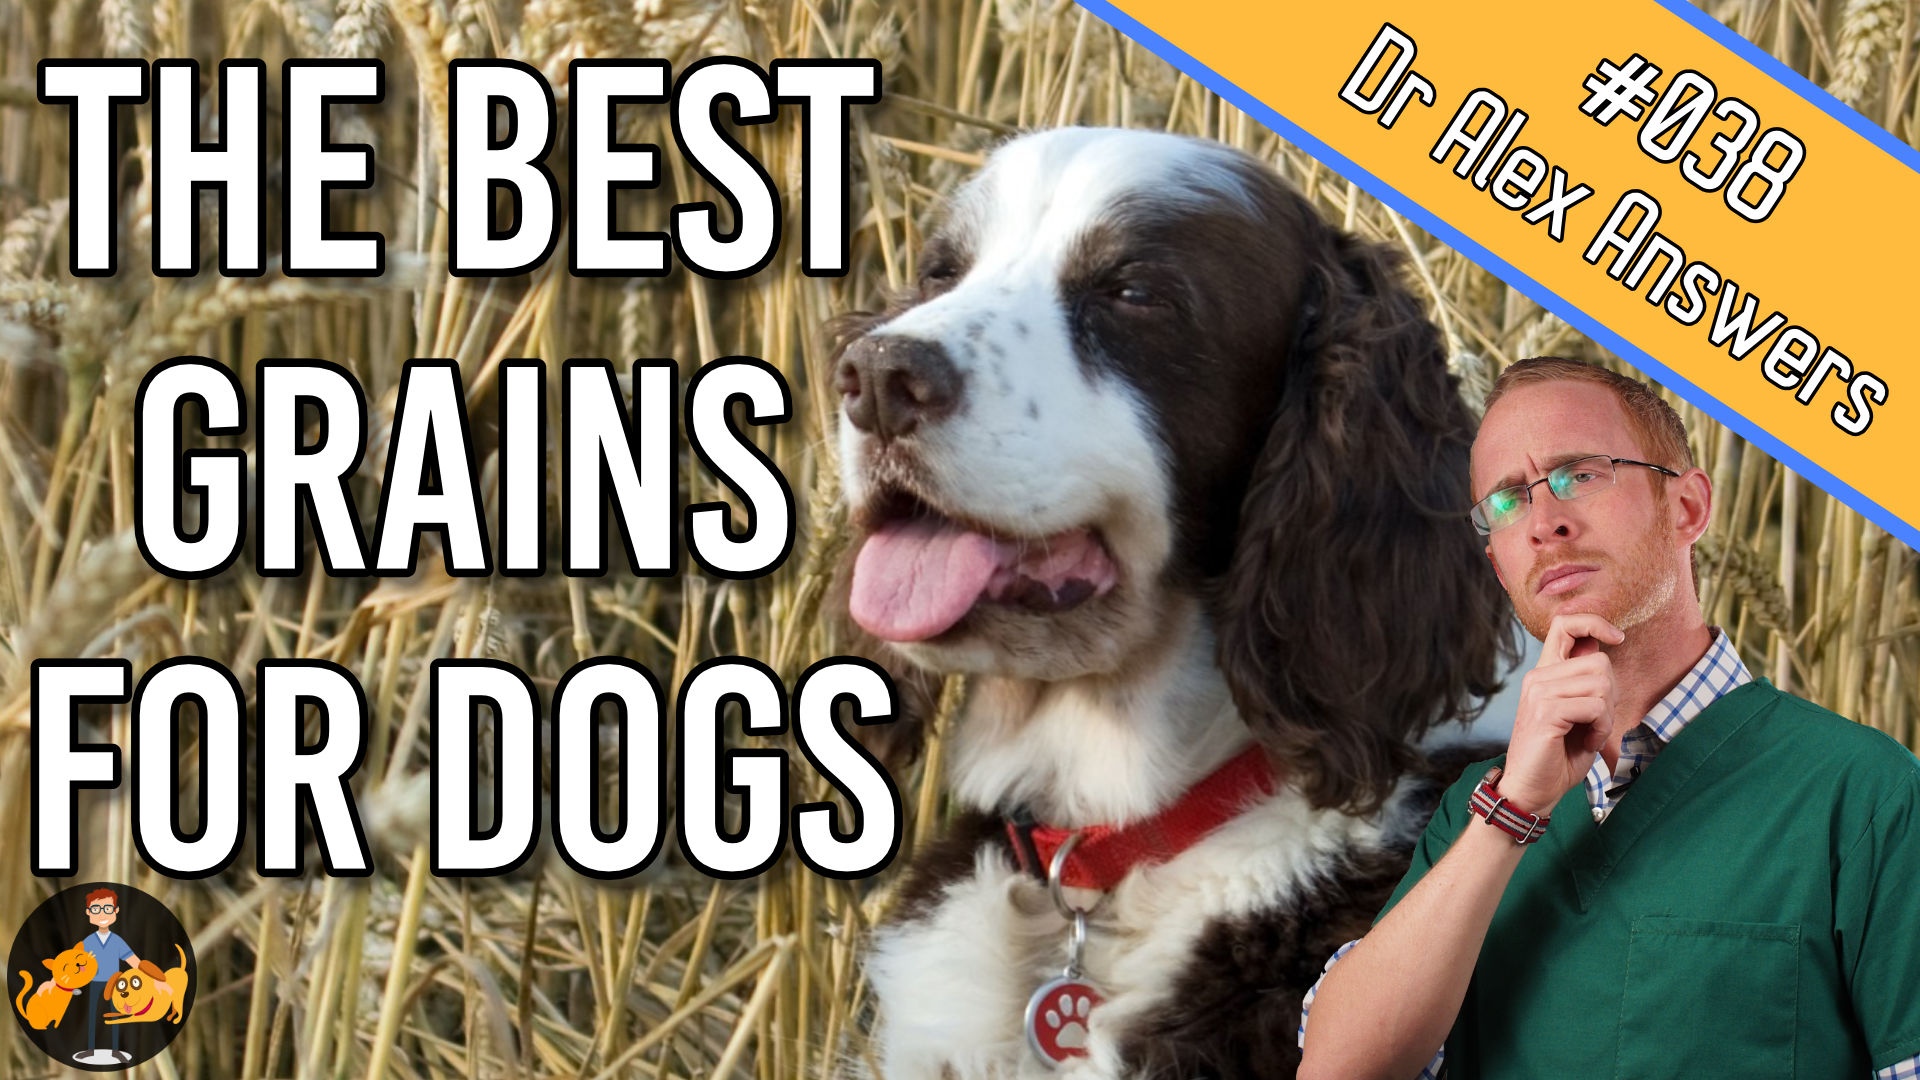 the best grains for dogs - can dogs eat grains